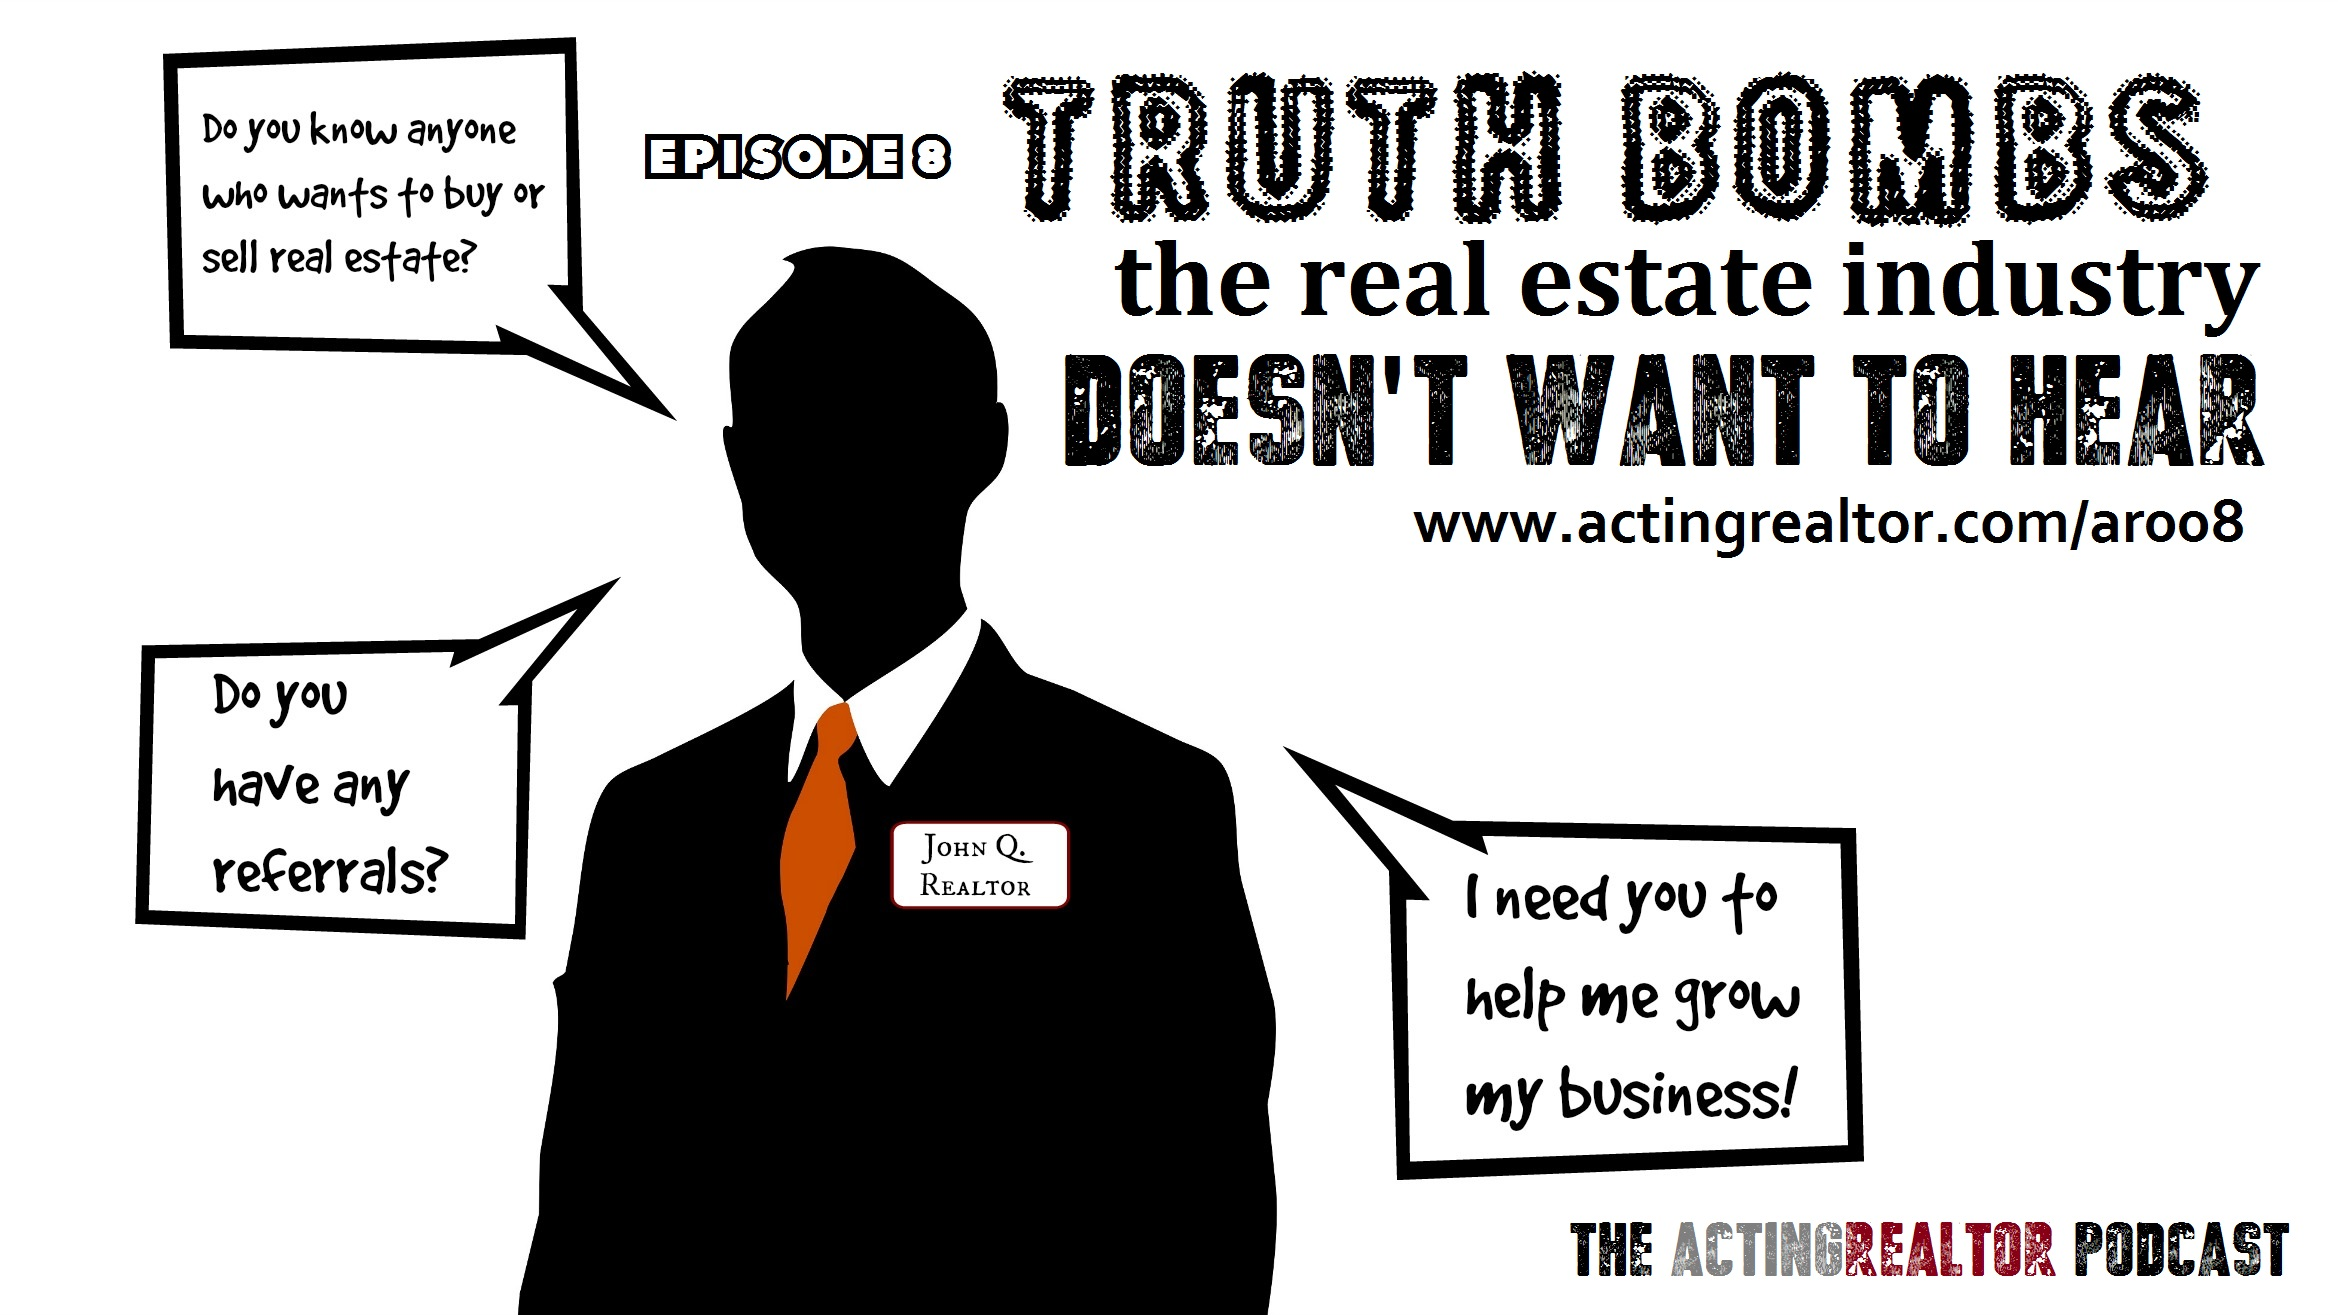 Truth Bombs the Real Estate Industry Doesn't Want to Hear